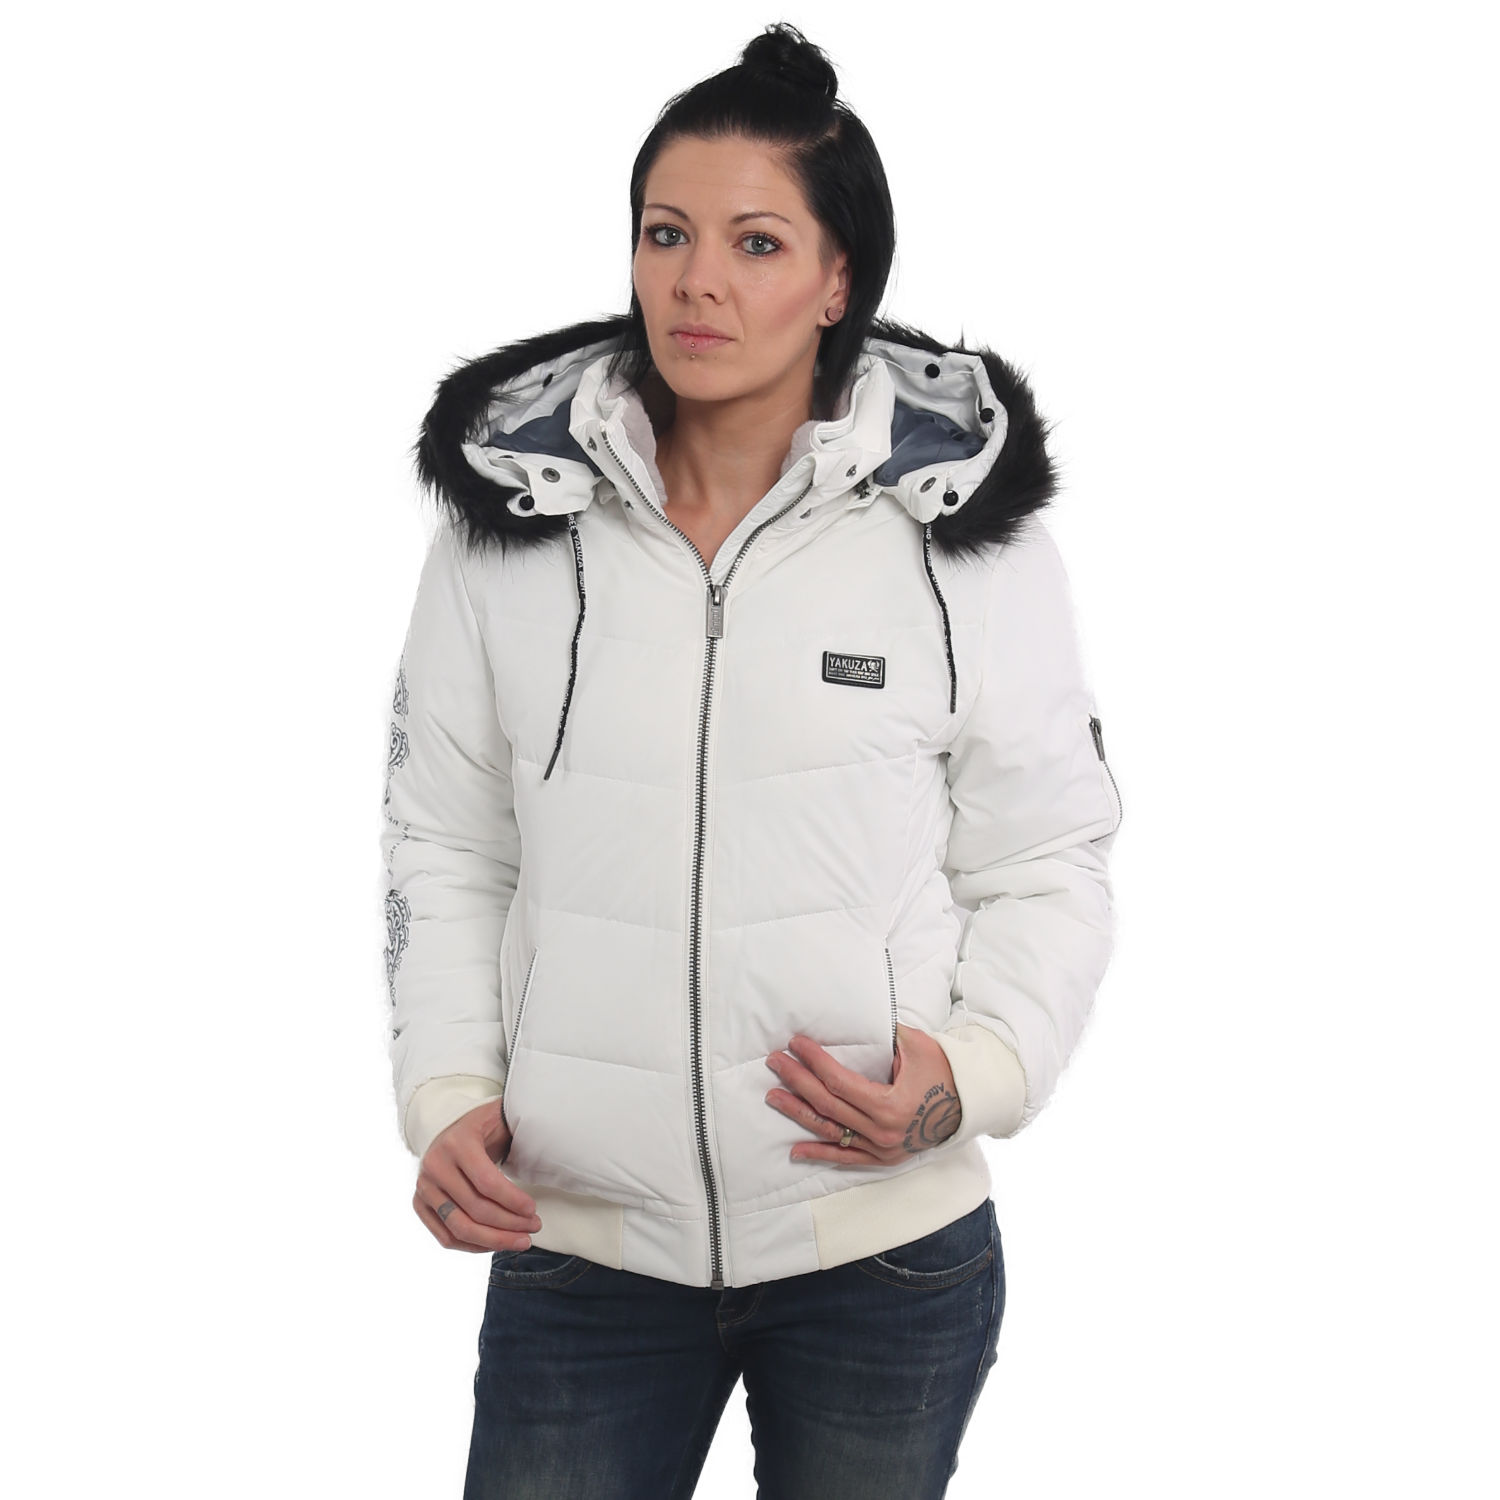 Yakuza, Ornamentic Winter Bomber Jacket, GJB14118 WHT XS